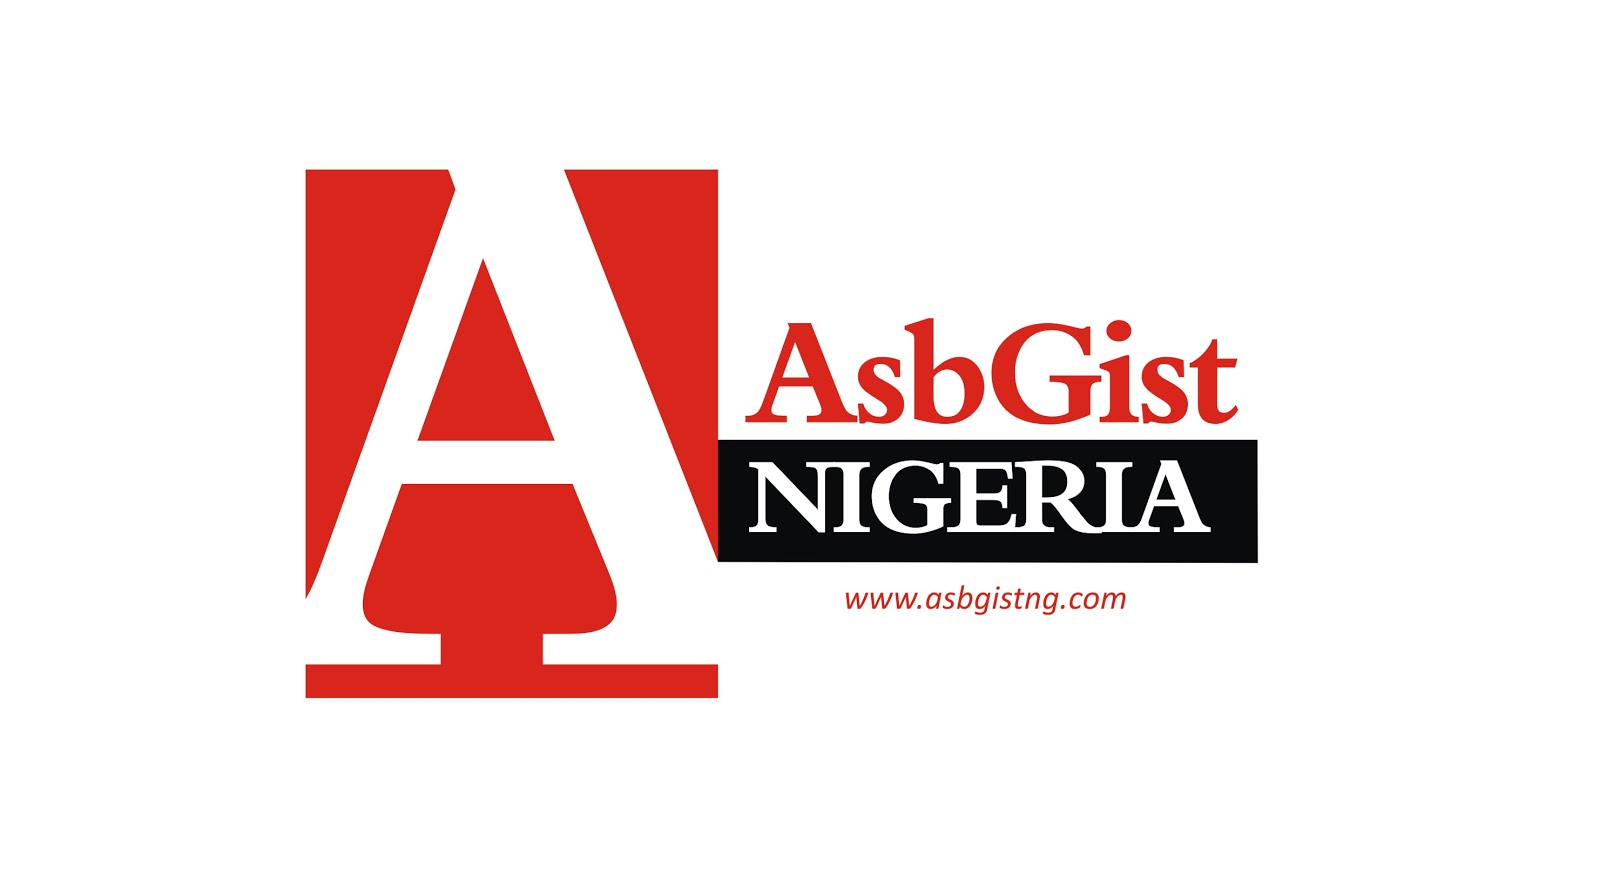 Nigeria News - Nigerian Newspapers, Breaking News and Latest Headlines | AsbGist Nigeria